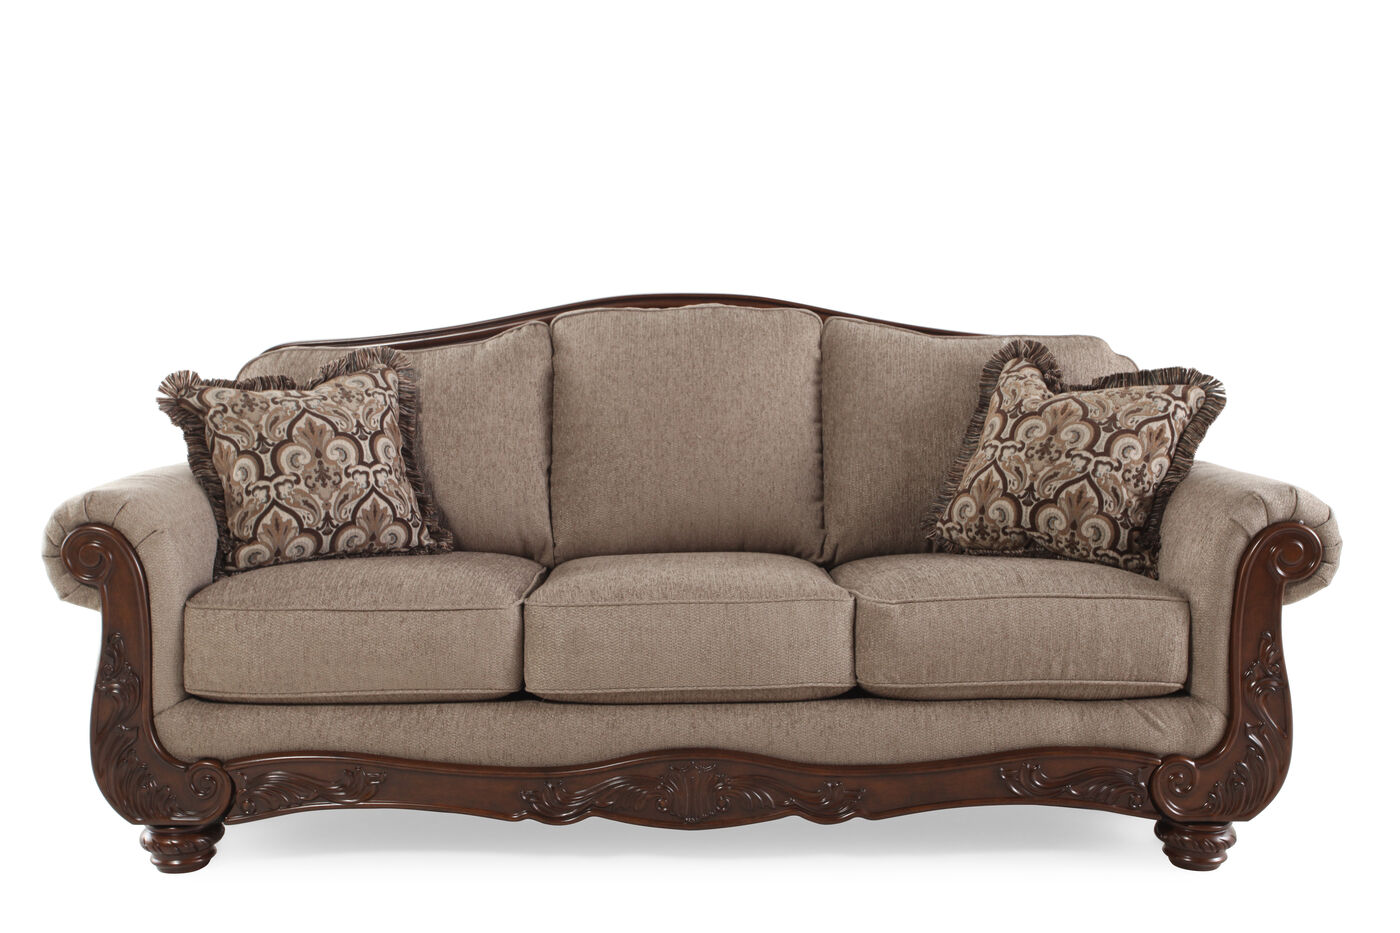 Ashley cecilyn cocoa sofa mathis brothers furniture Sofa loveseat